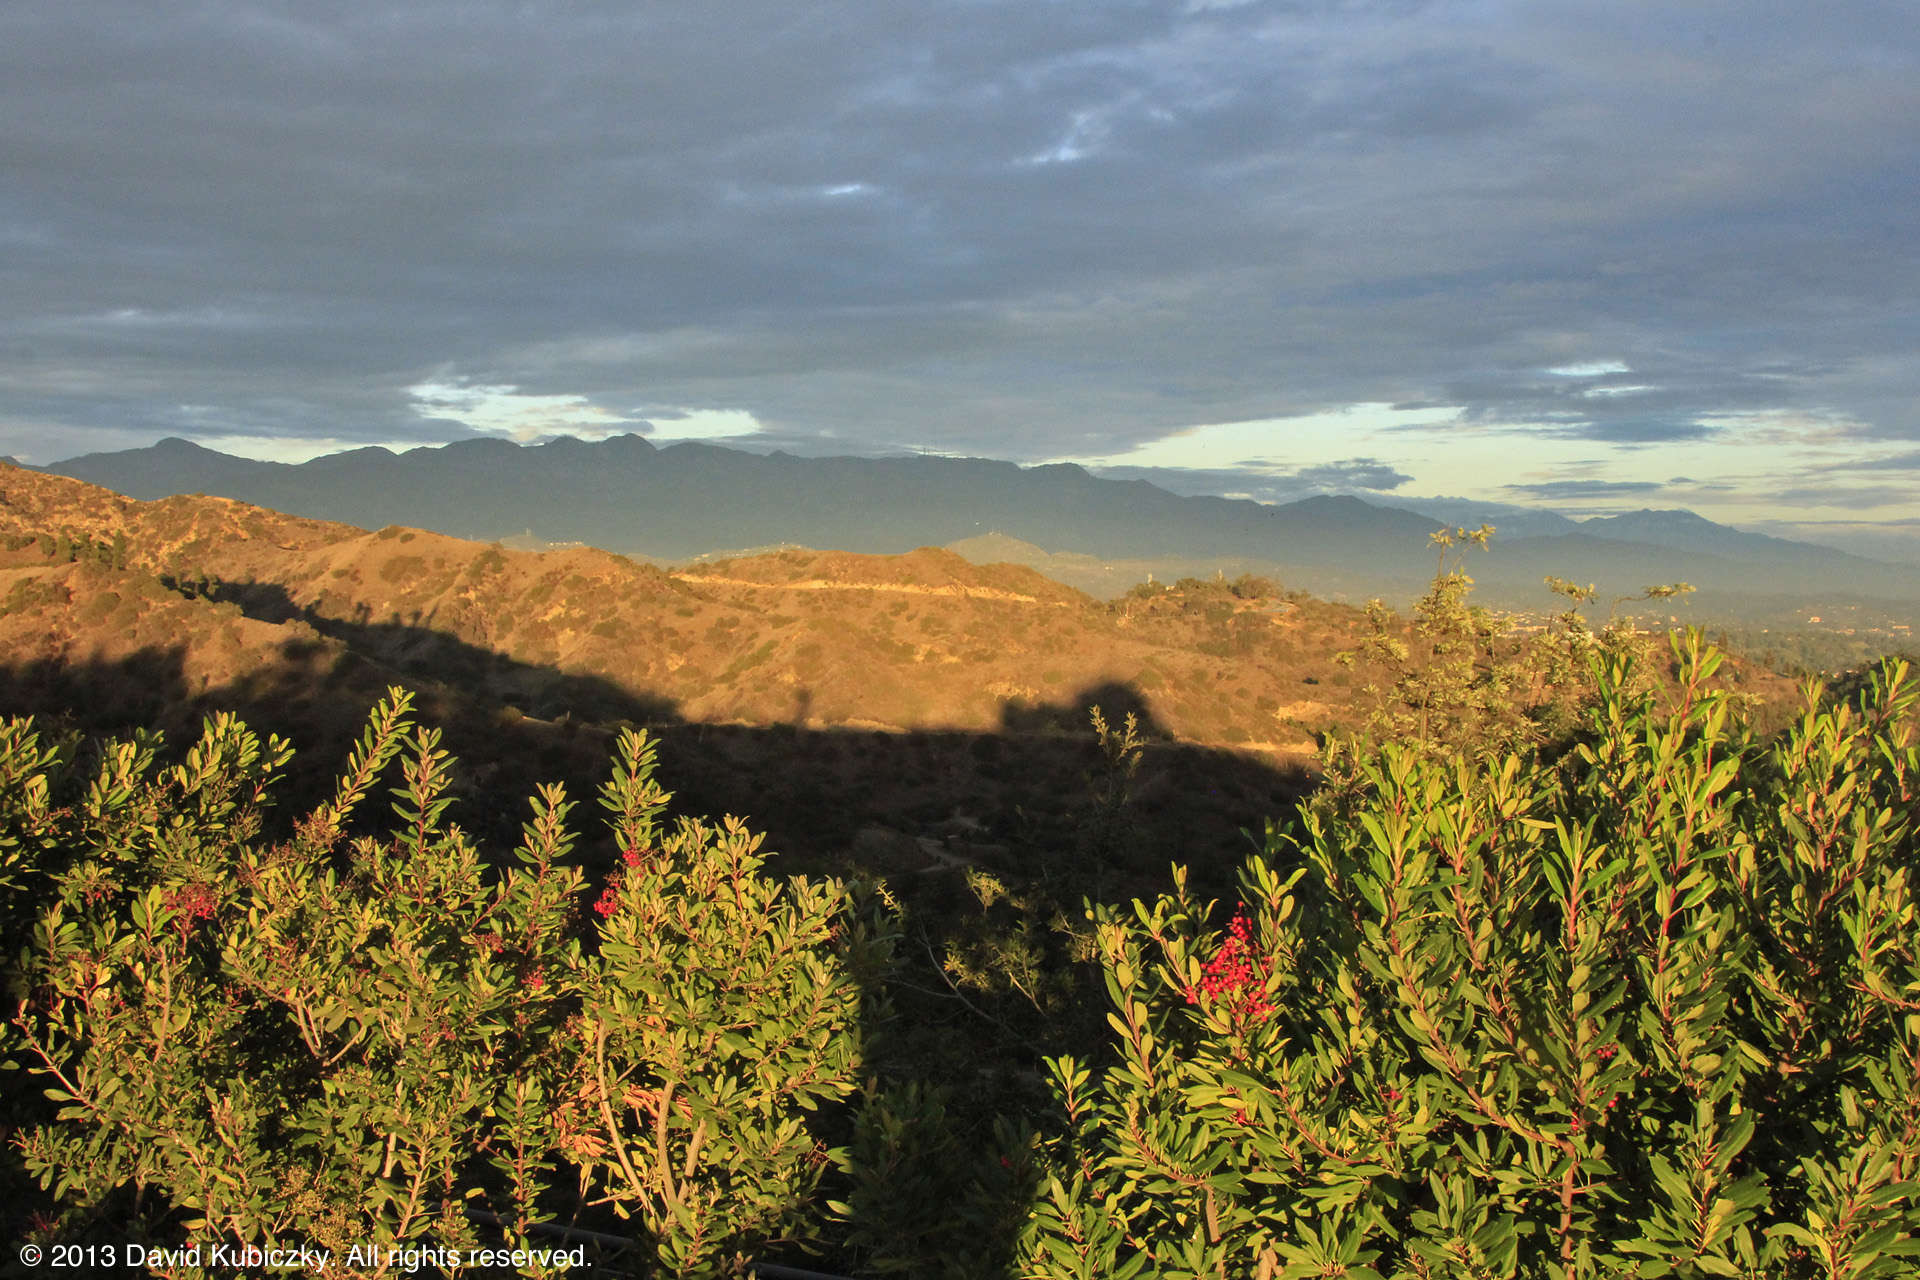 Looking toward Glendale and the San Gabriel mountains in the distance.